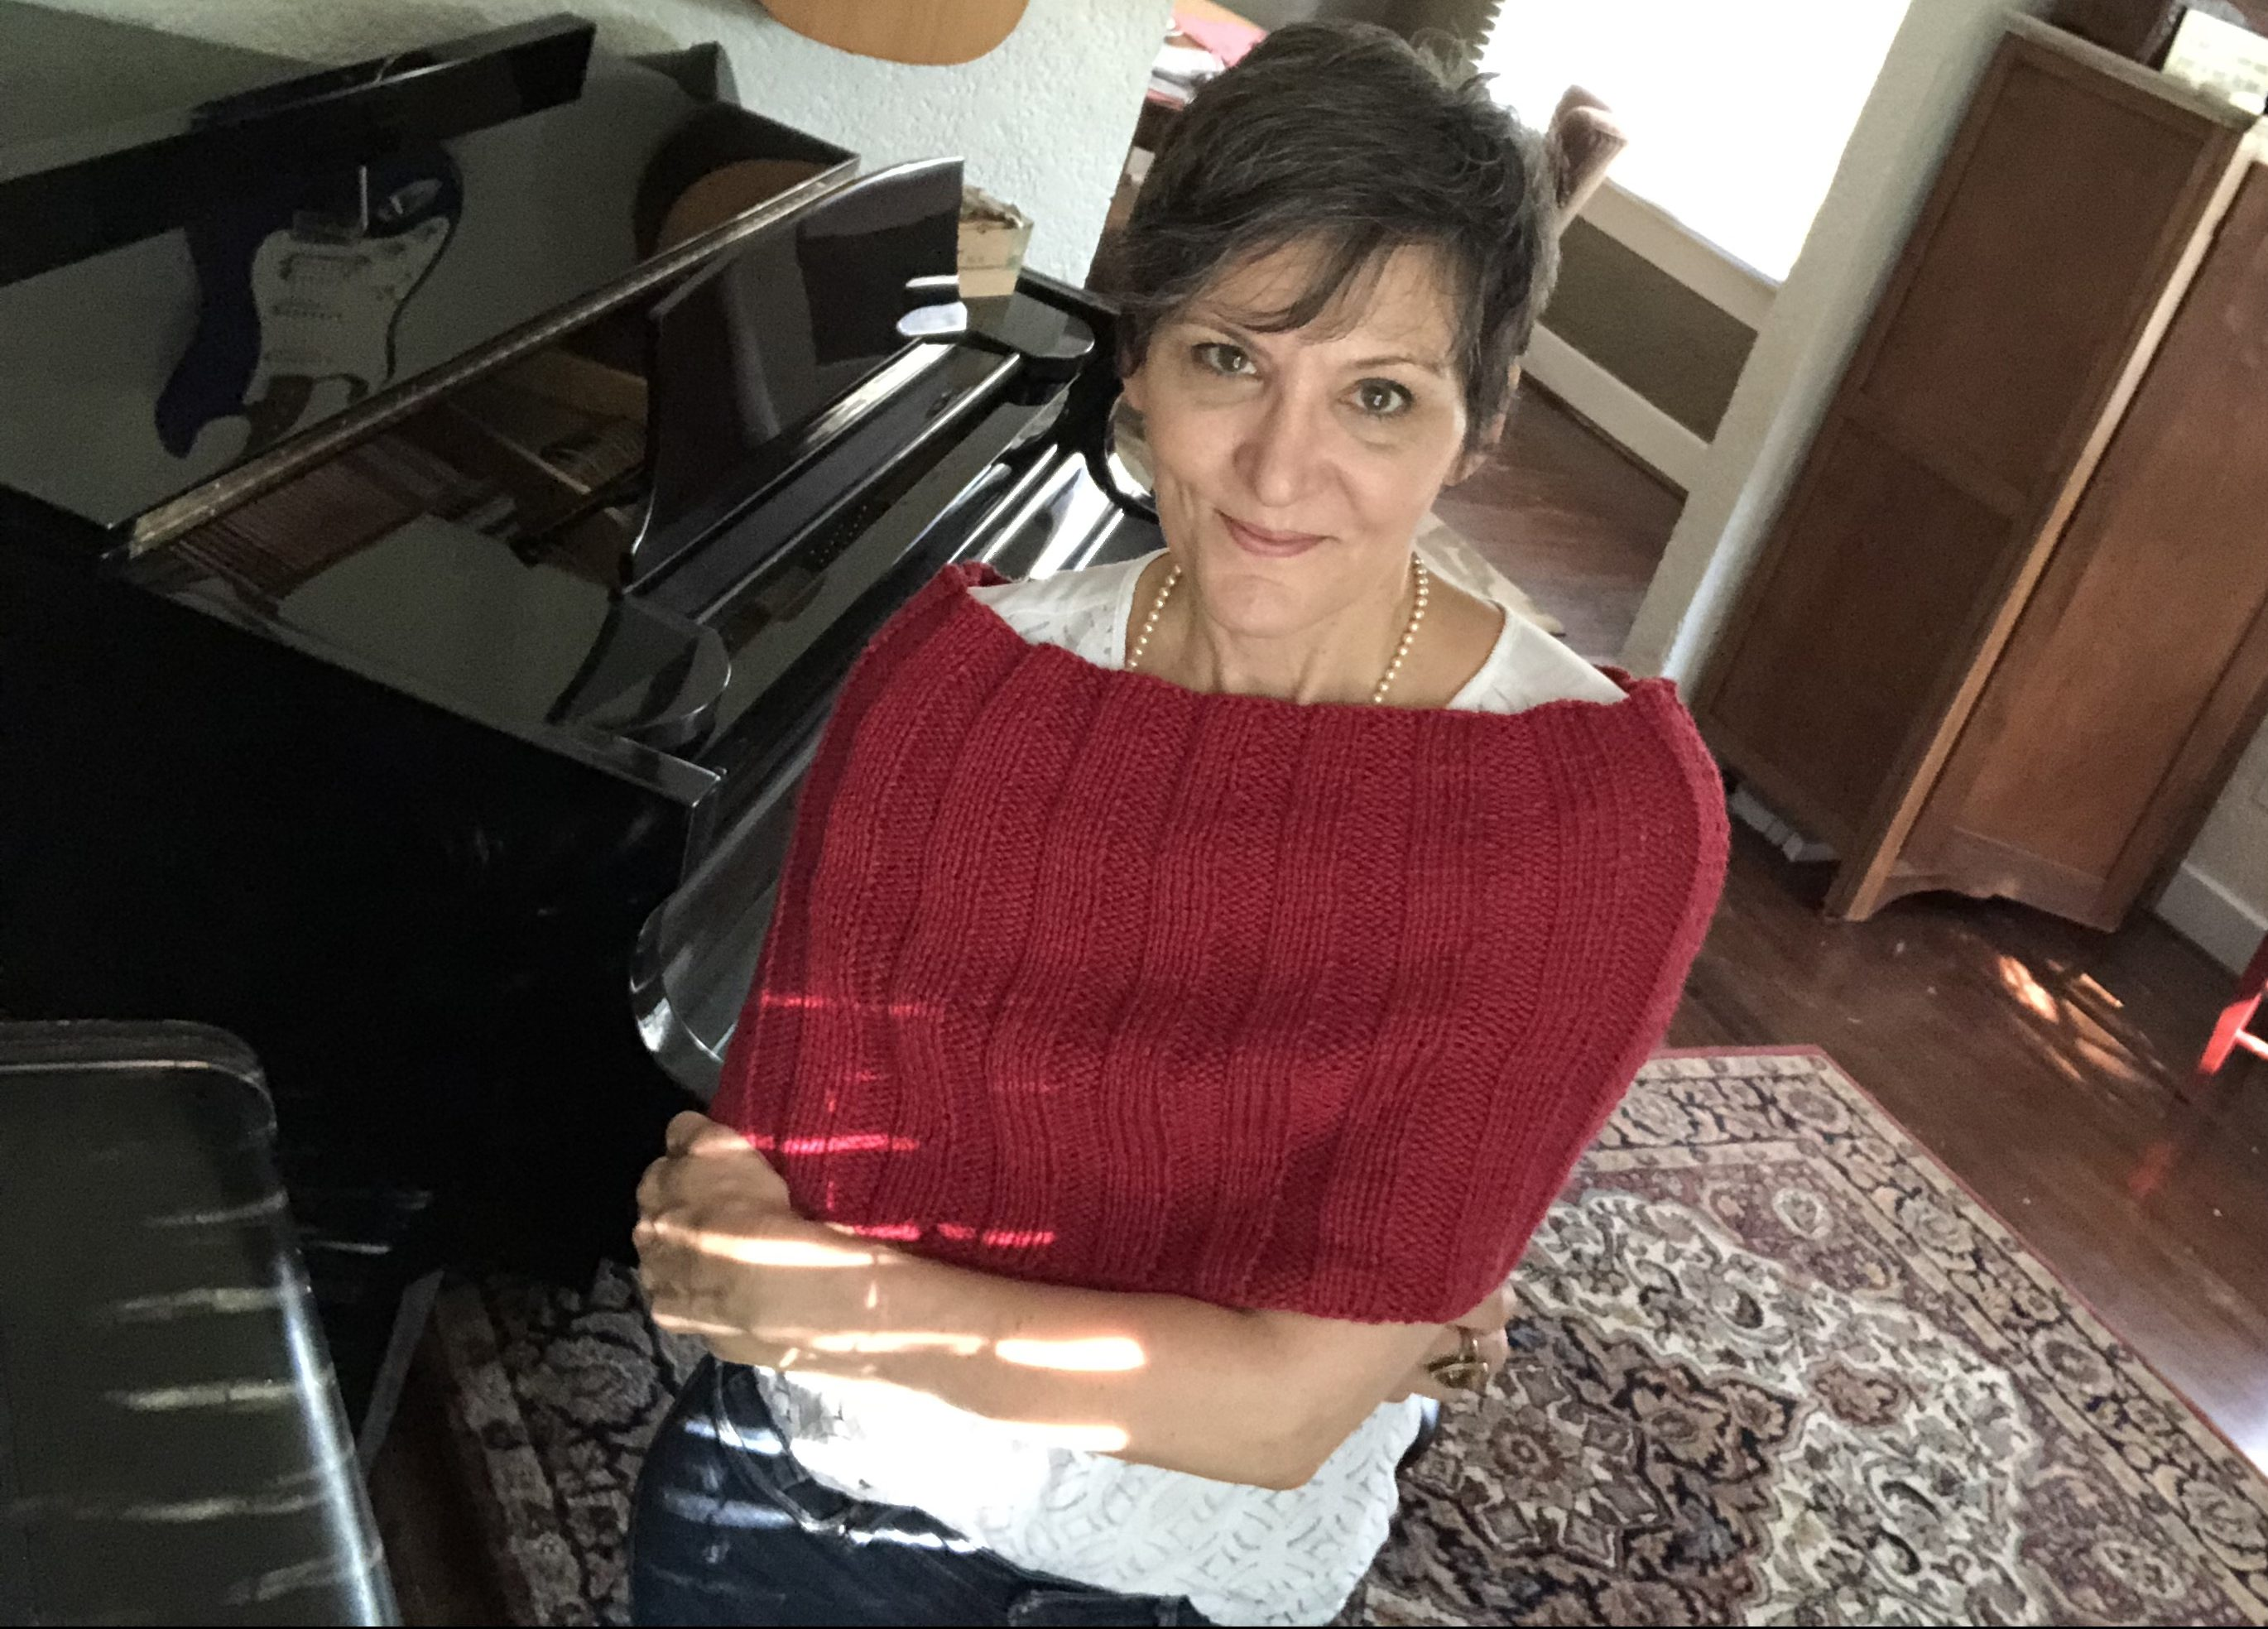 Free Knitting Pattern – Easy Does It Capelet or Cowl